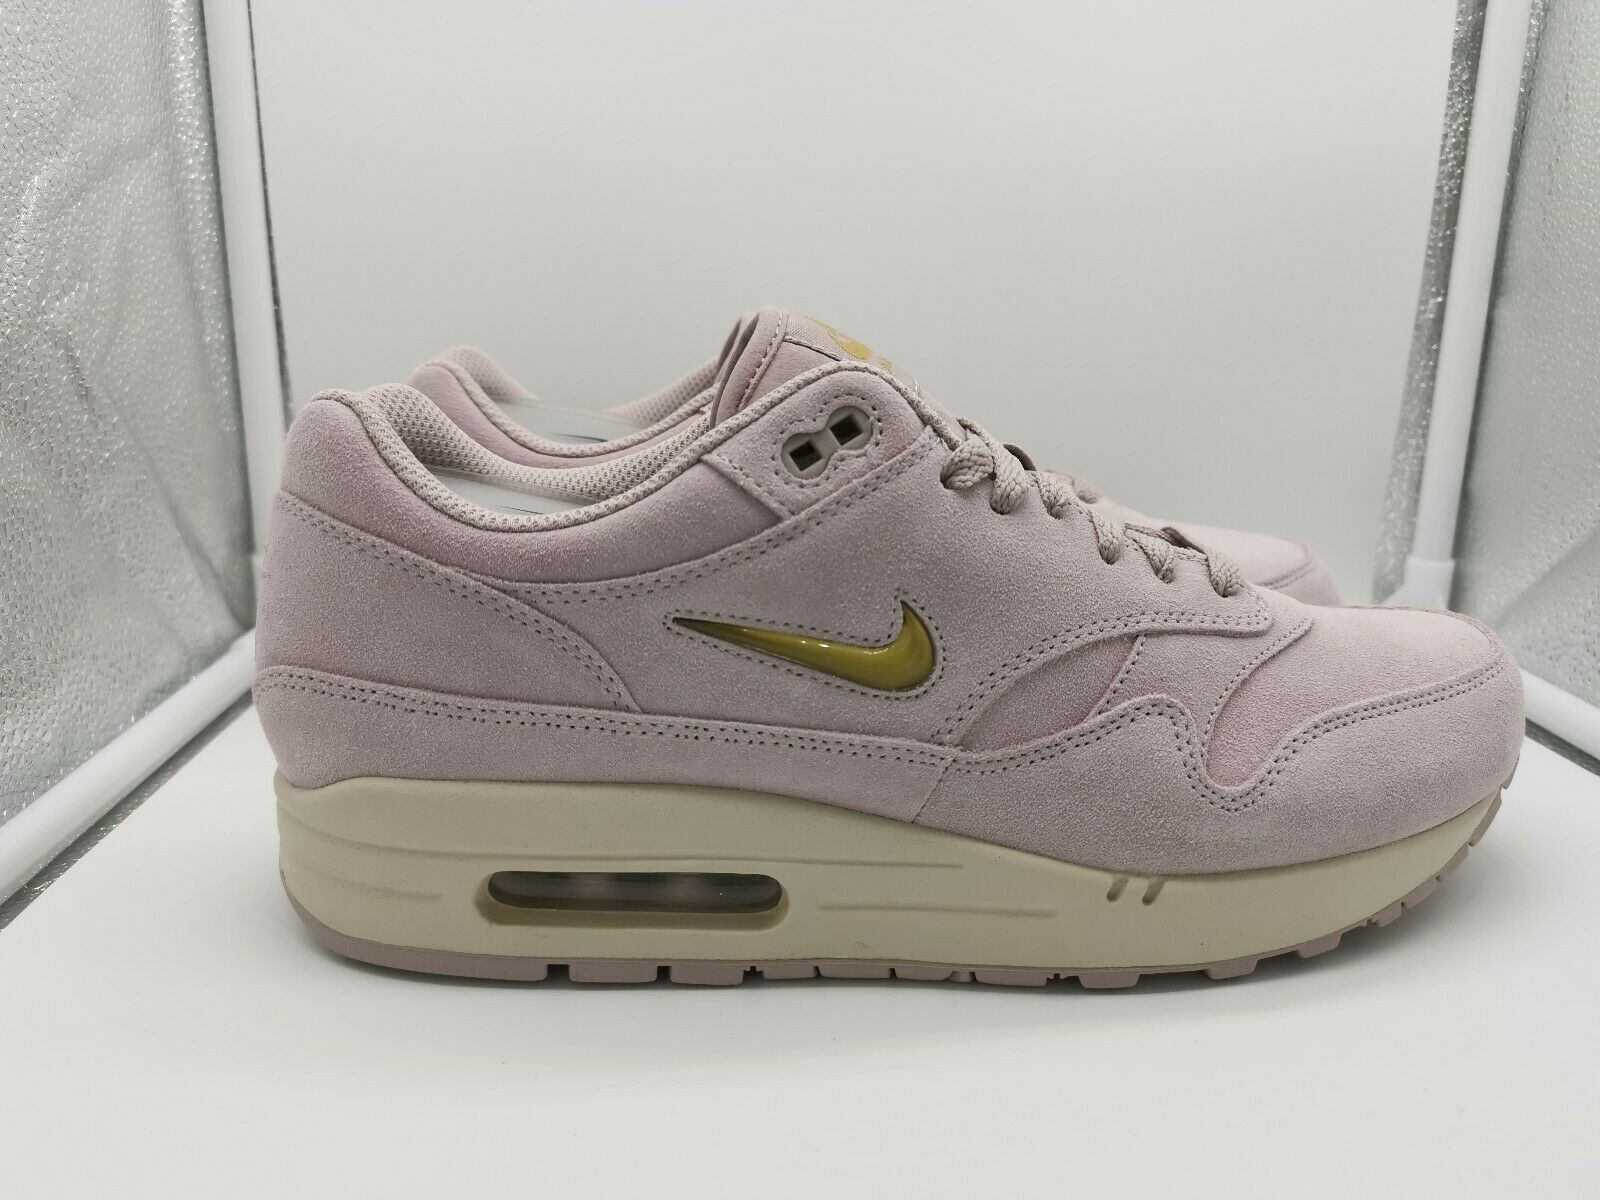 Nike Air Max 1 Premium SC Particle pink Metallic gold 918354-601